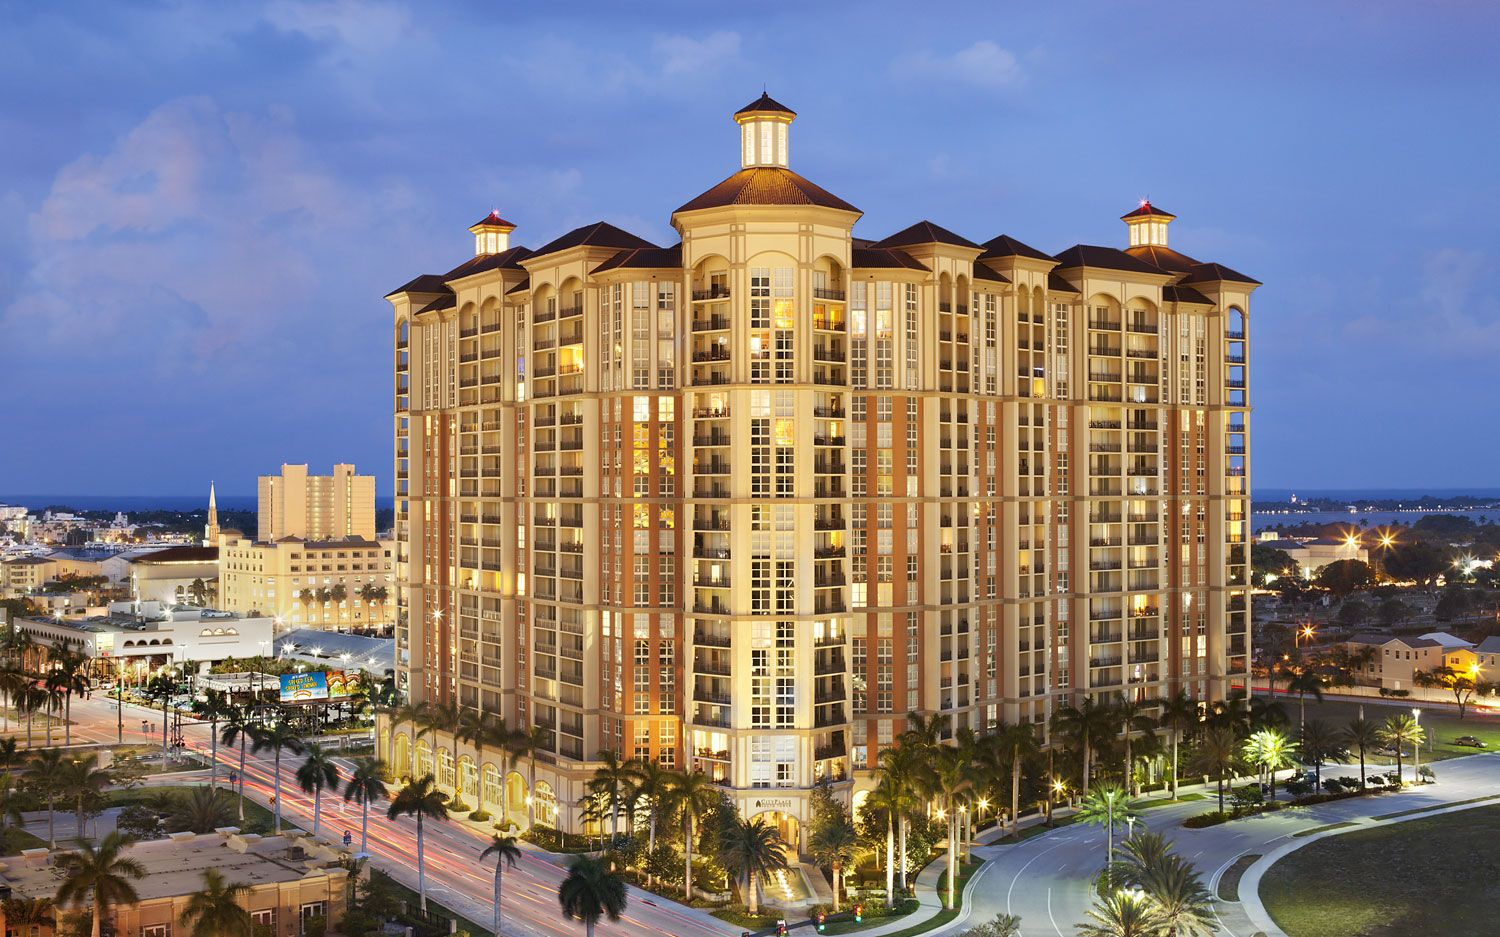 The Official Travel Guide To Visit West Palm Beach Featuring Up Date Information On Attractions Hotels Restaurants Nightlife Tipore